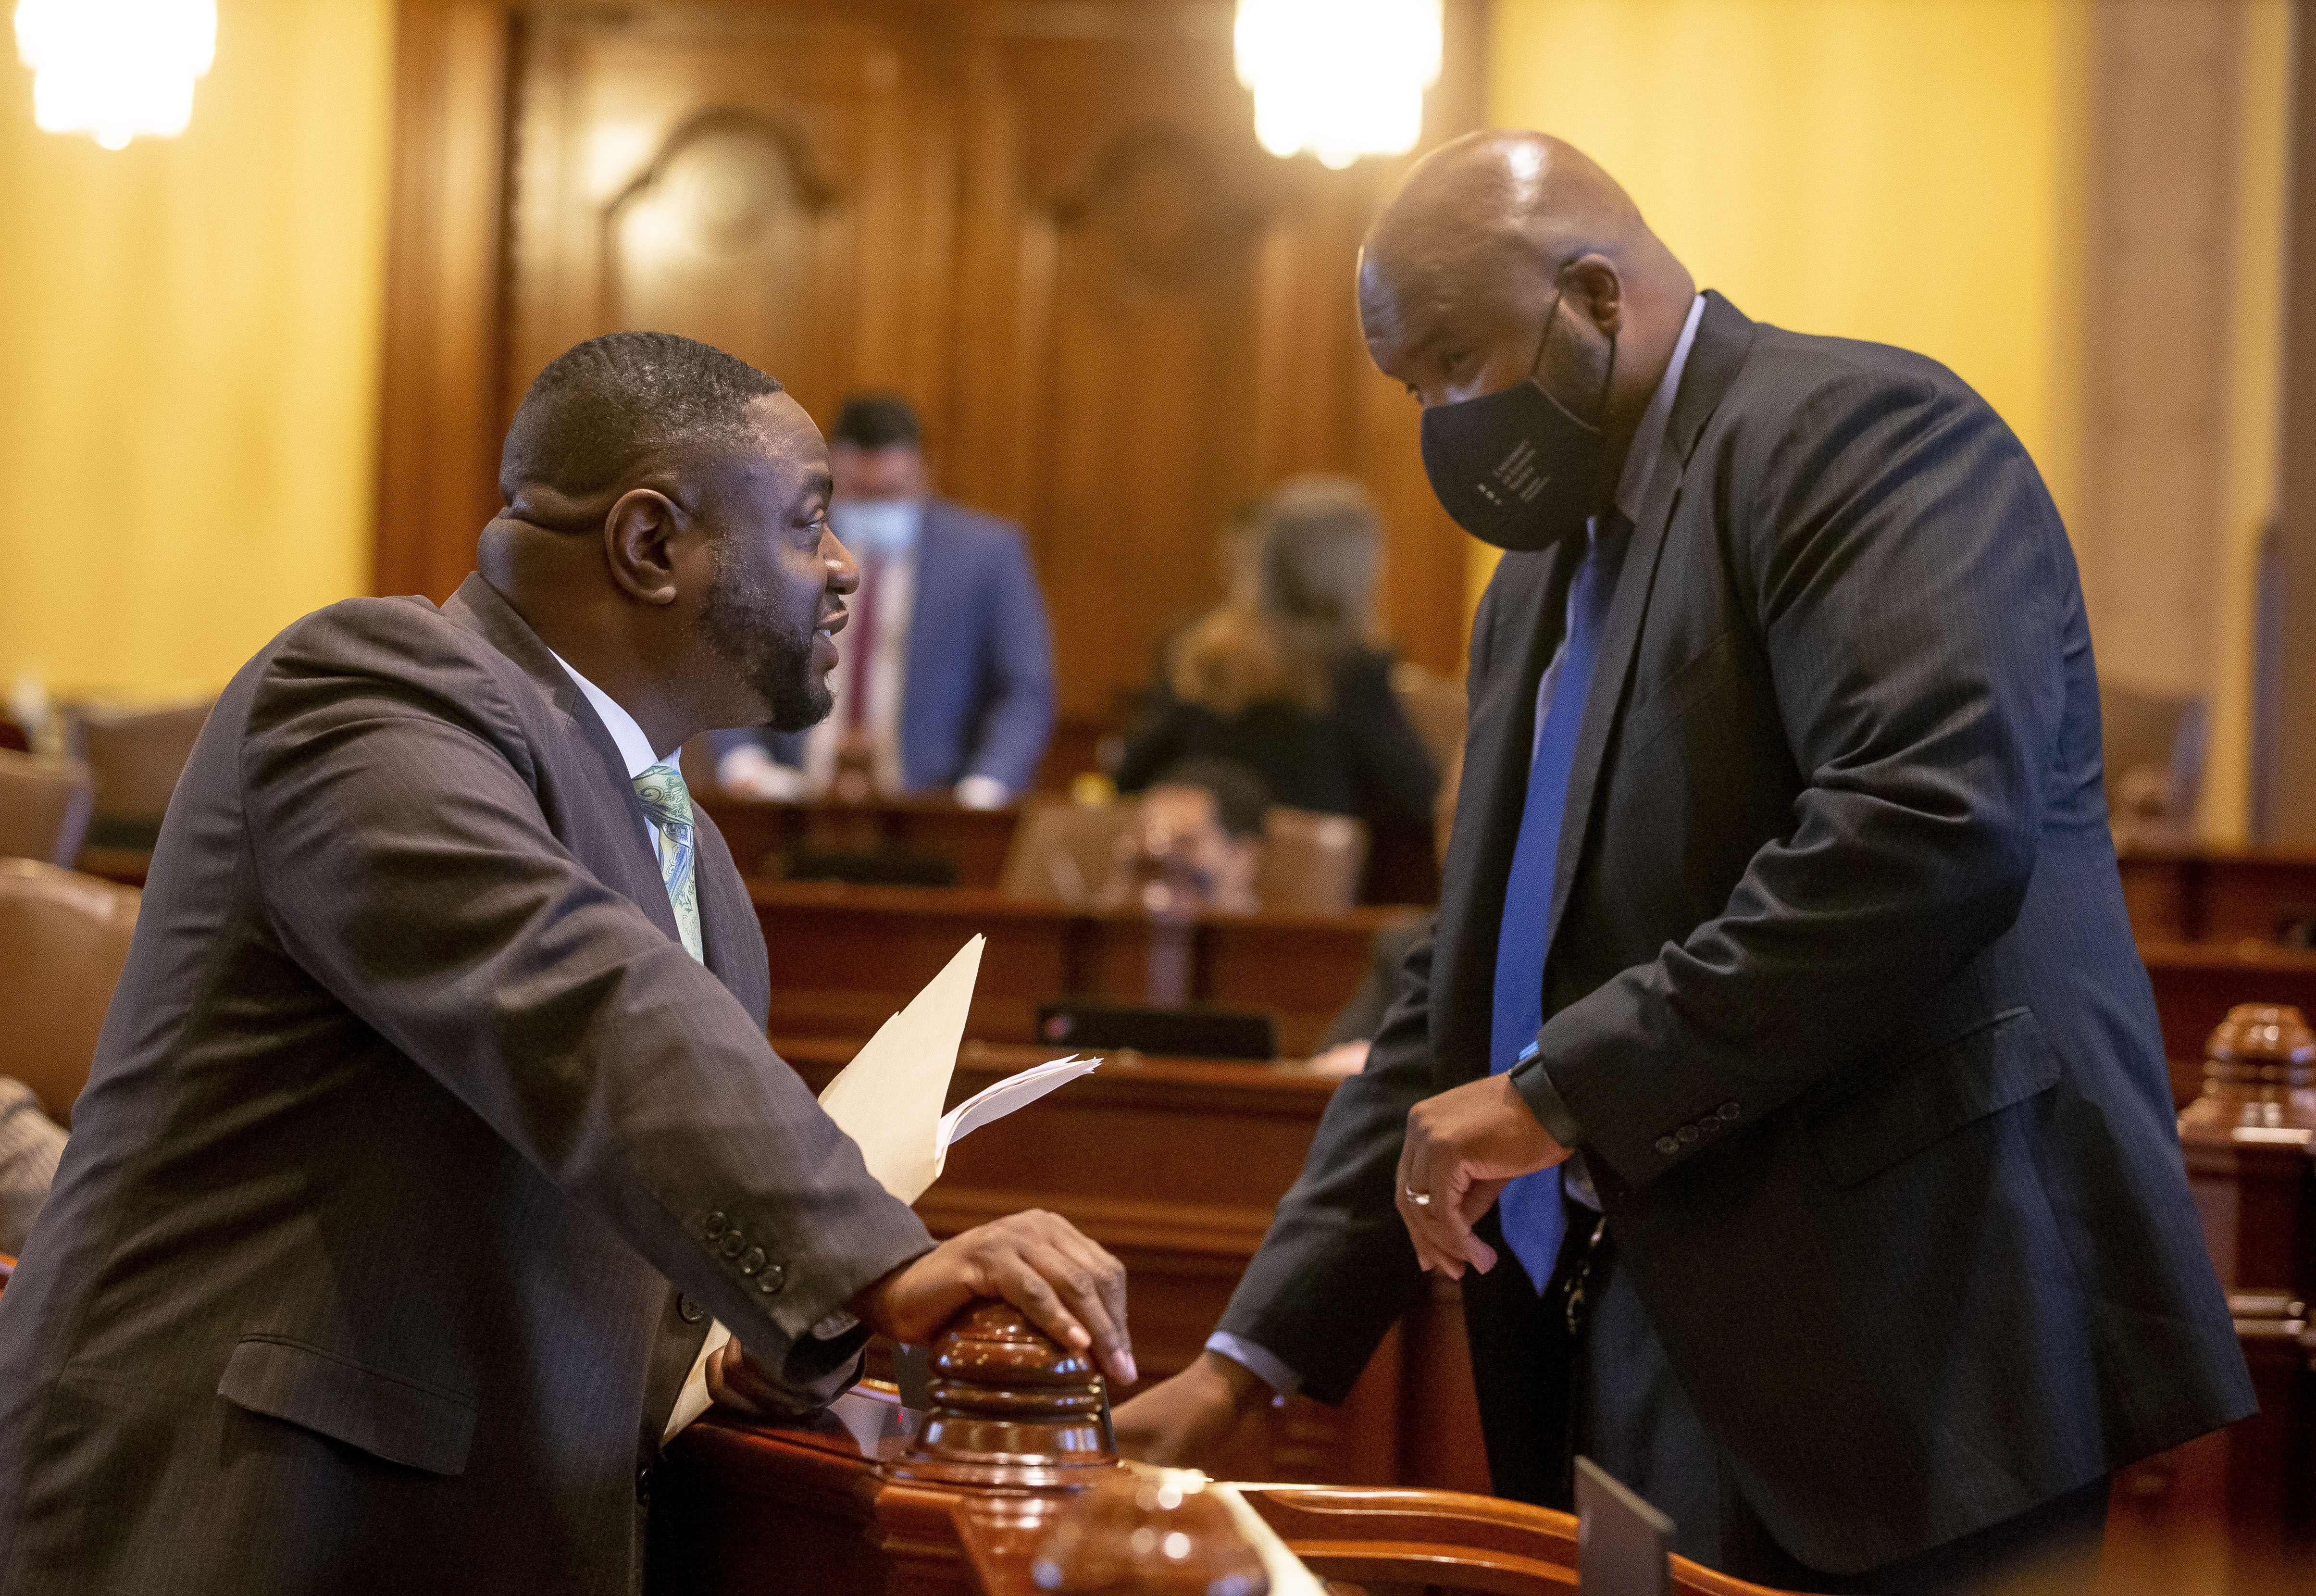 State Sen. Emil Jones III, D-Chicago, left, speaks with state Sen. Elgie Sims Jr., D-Chicago, right, on the floor of the Senate in May.